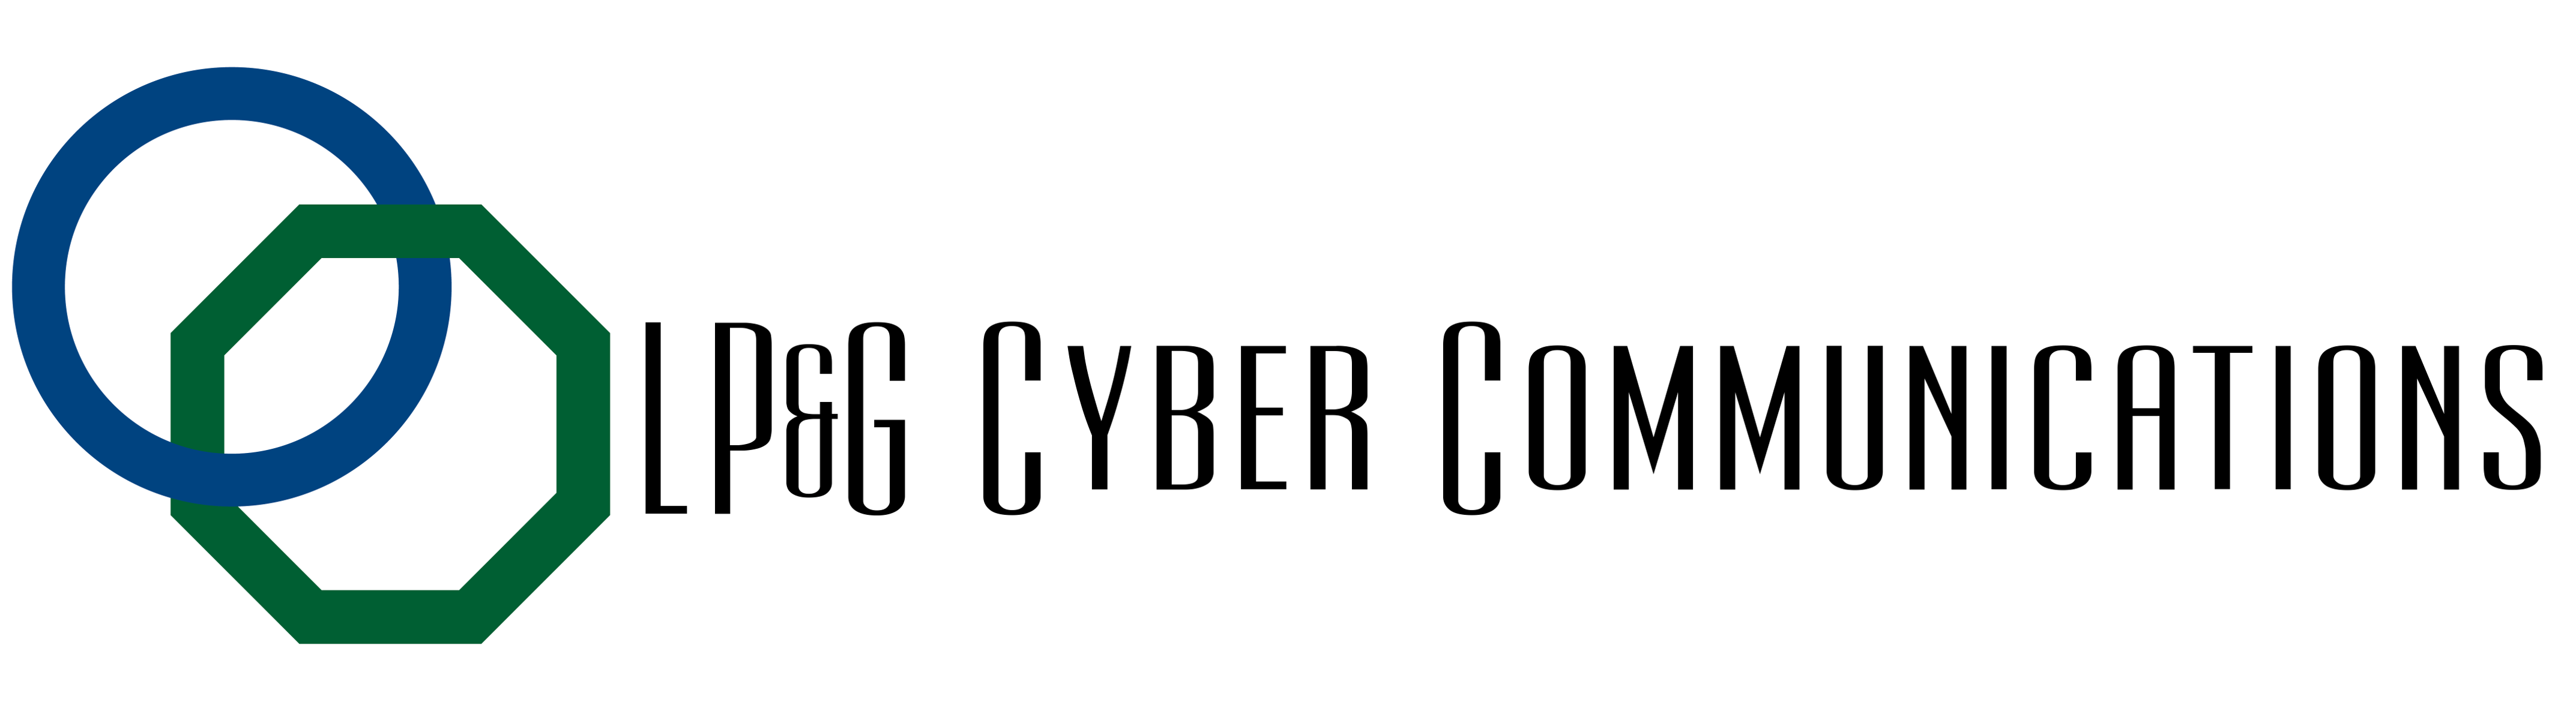 LP&G Cyber Communications